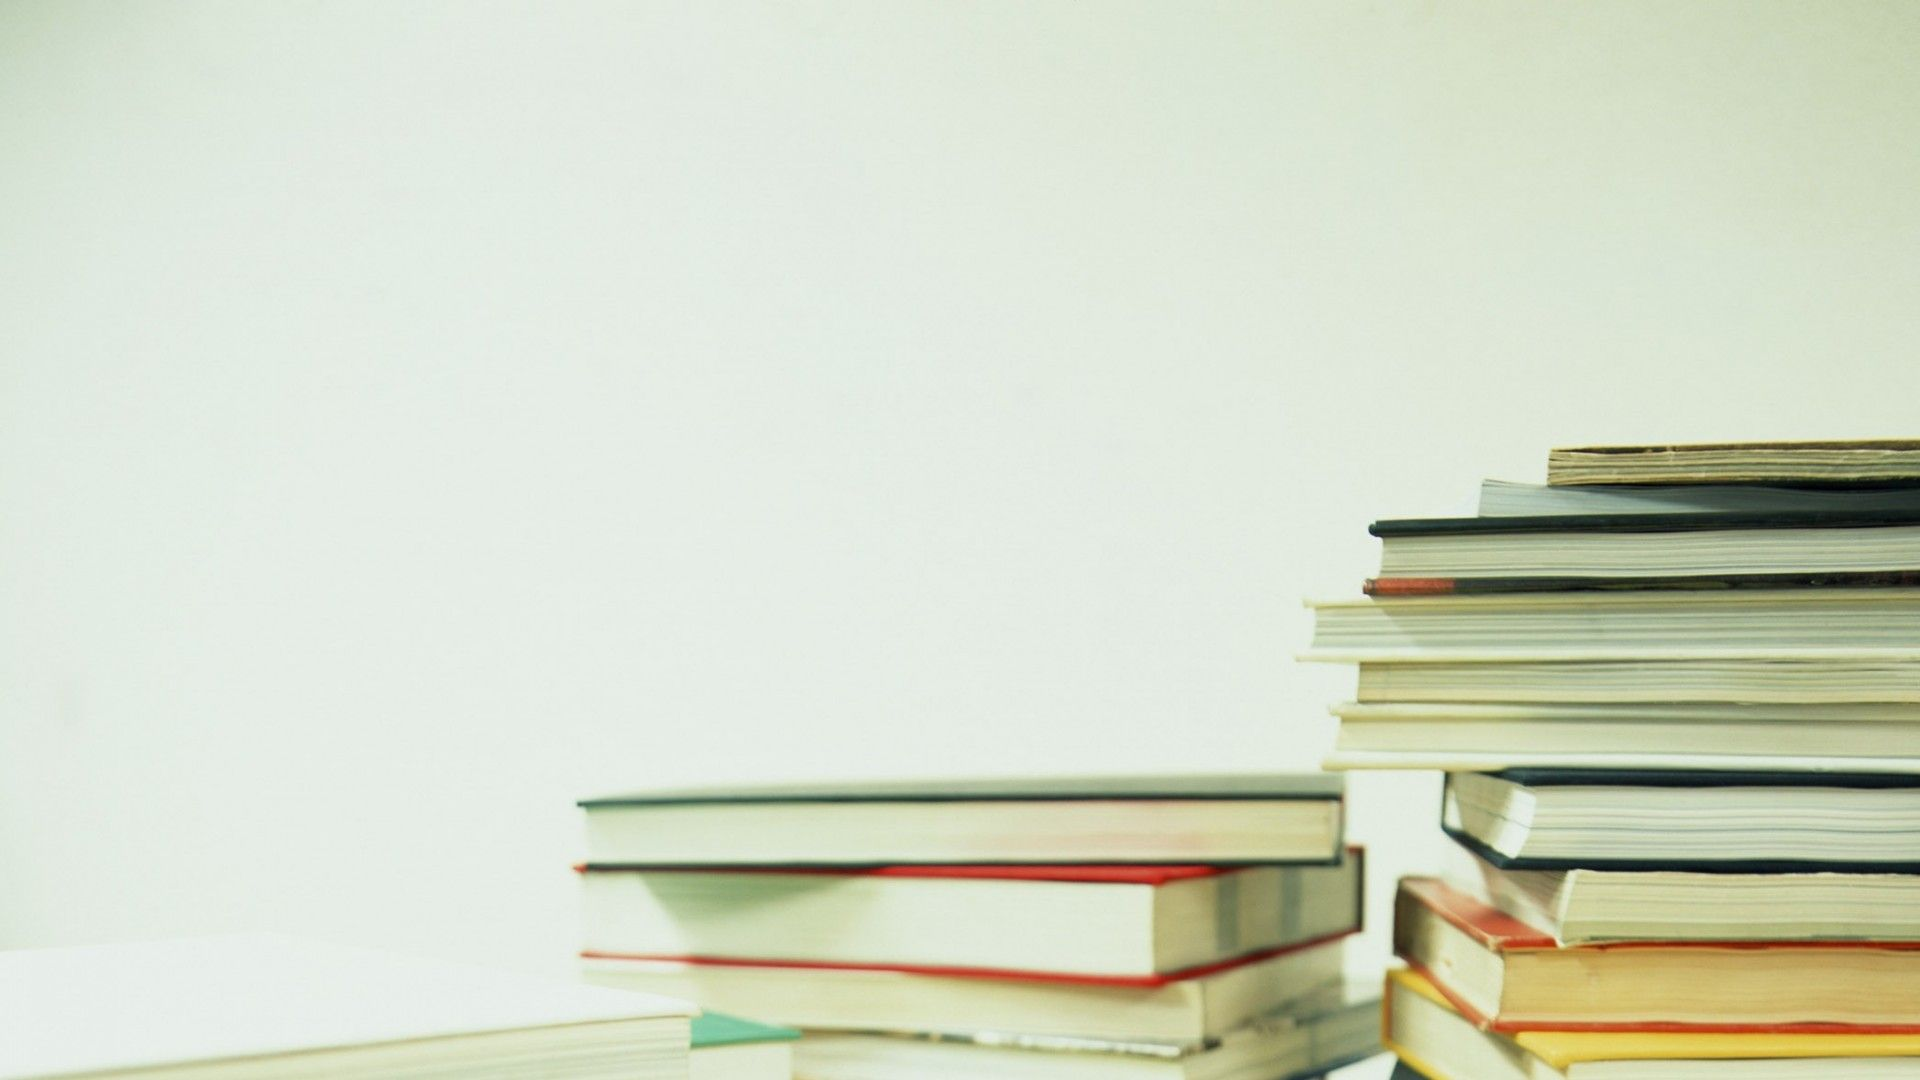 Learning Books Education Right To Education Backgrounds Free